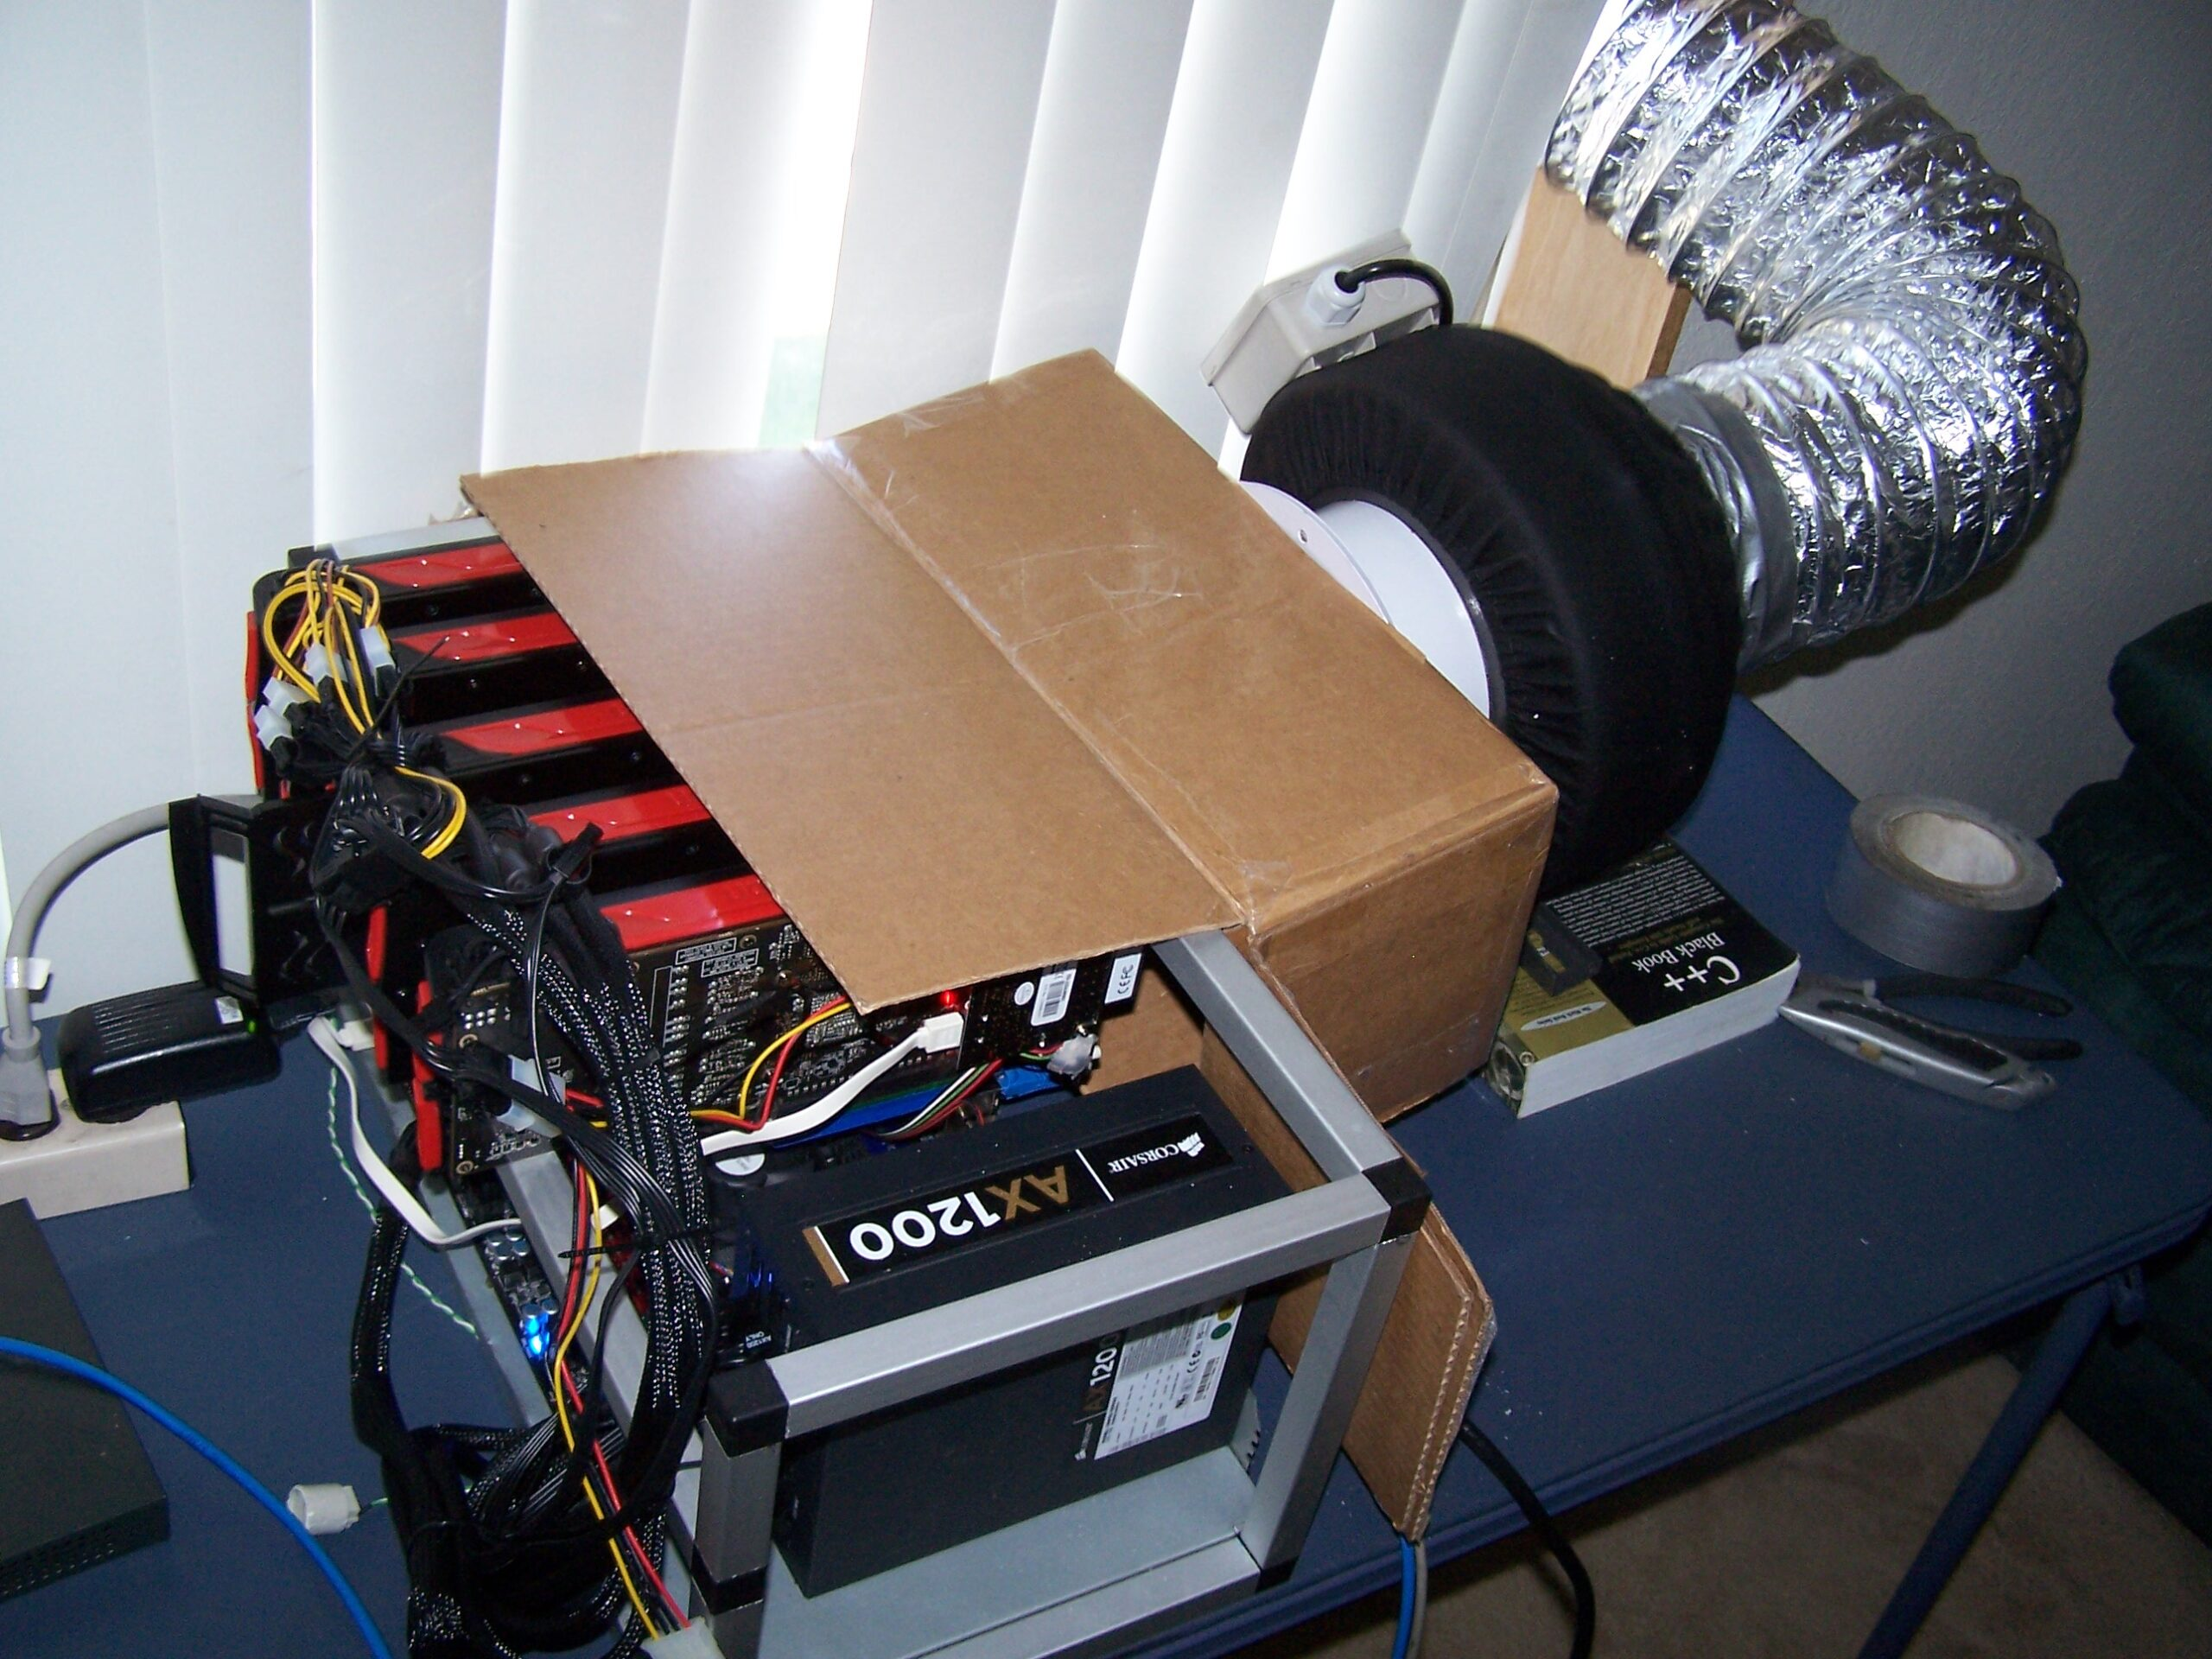 Crypto winter: Bitcoiners use mining rigs as heaters as temperatures drop